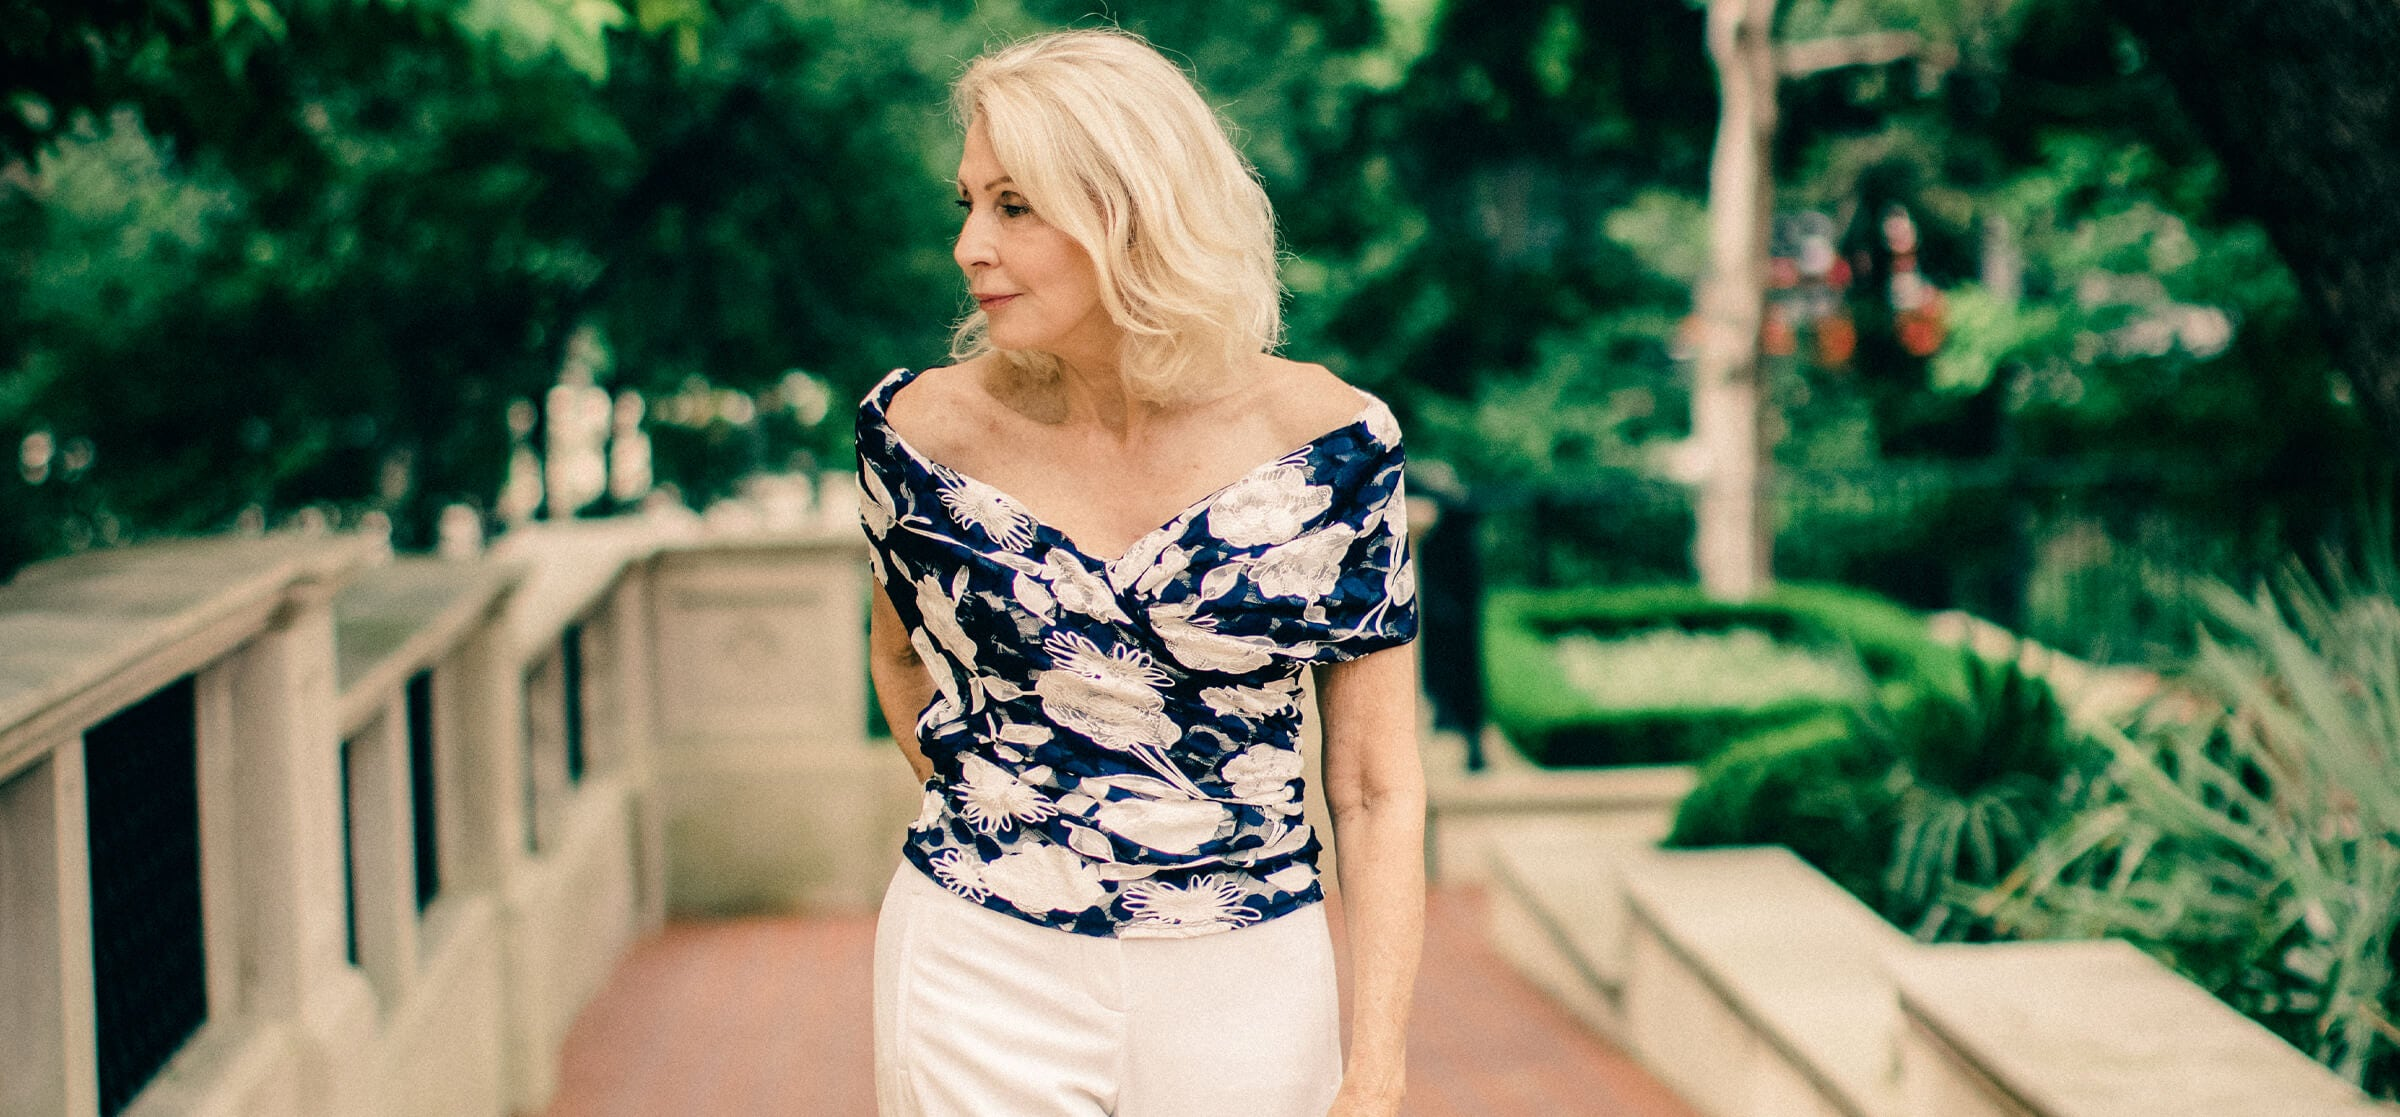 Sonia from @stylebeyondage wears the CHAMA floral top